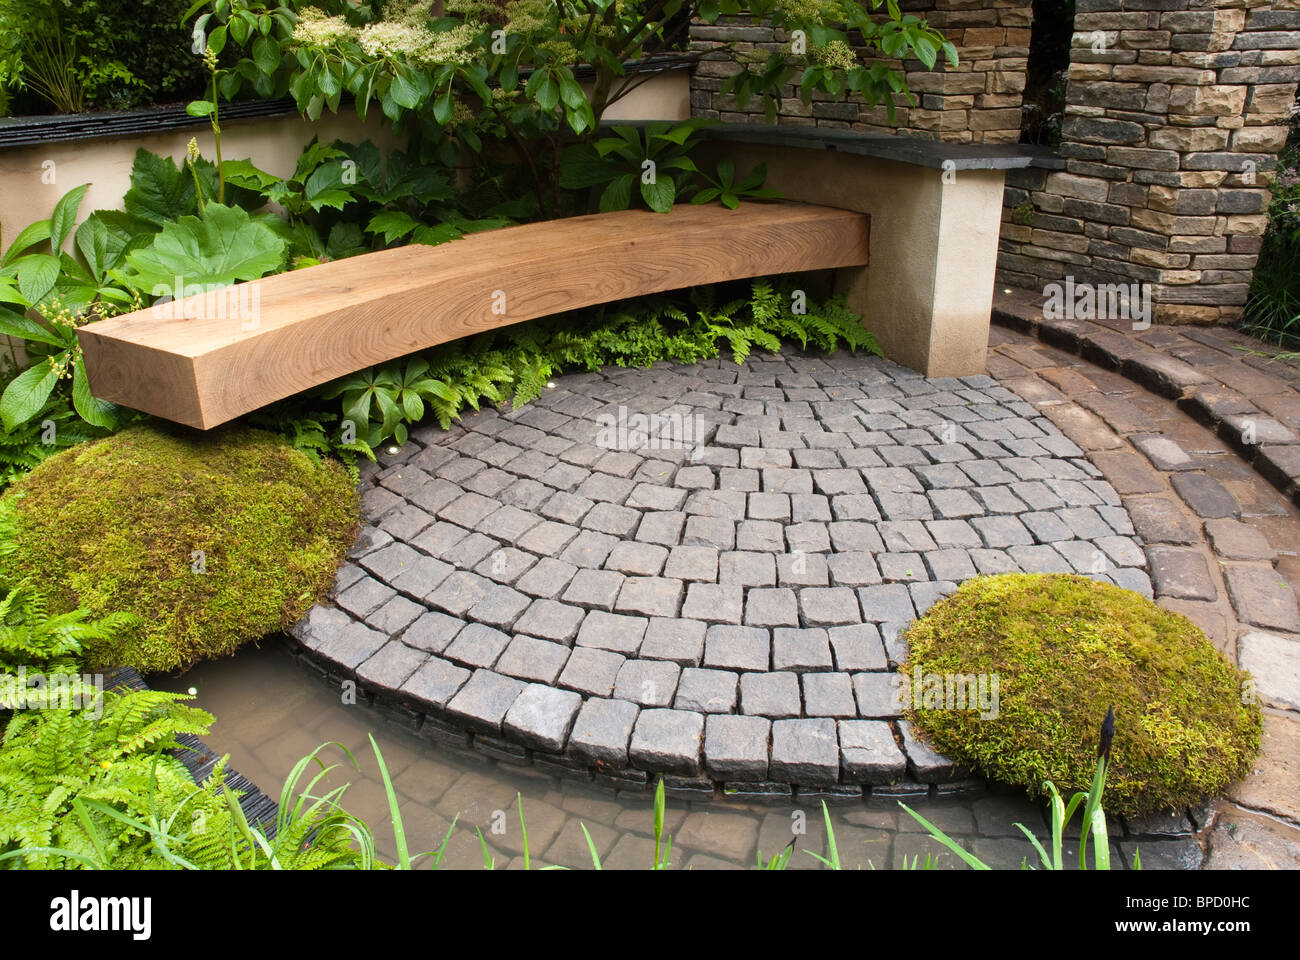 Garden Bench And Stone Patio In Circular Curves With Moss